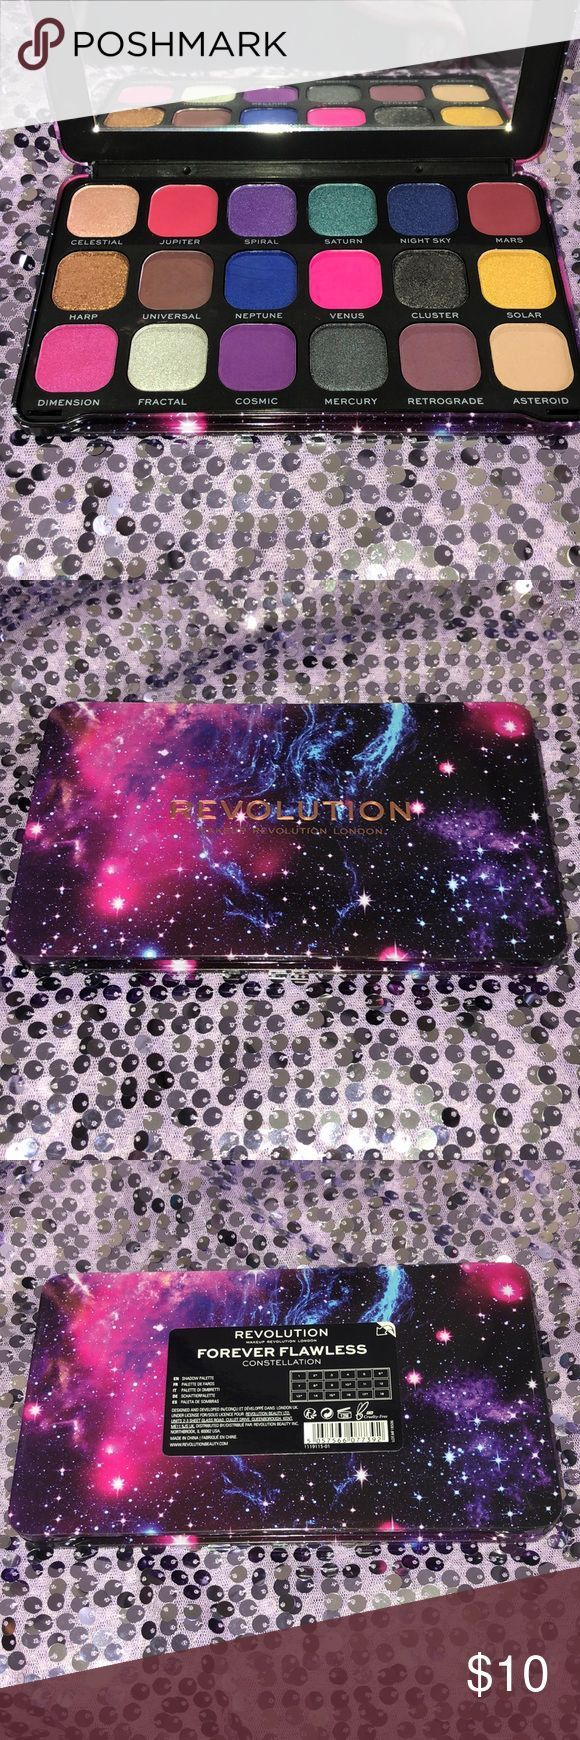 Makeup Revolution Forever Flawless Constellation A few